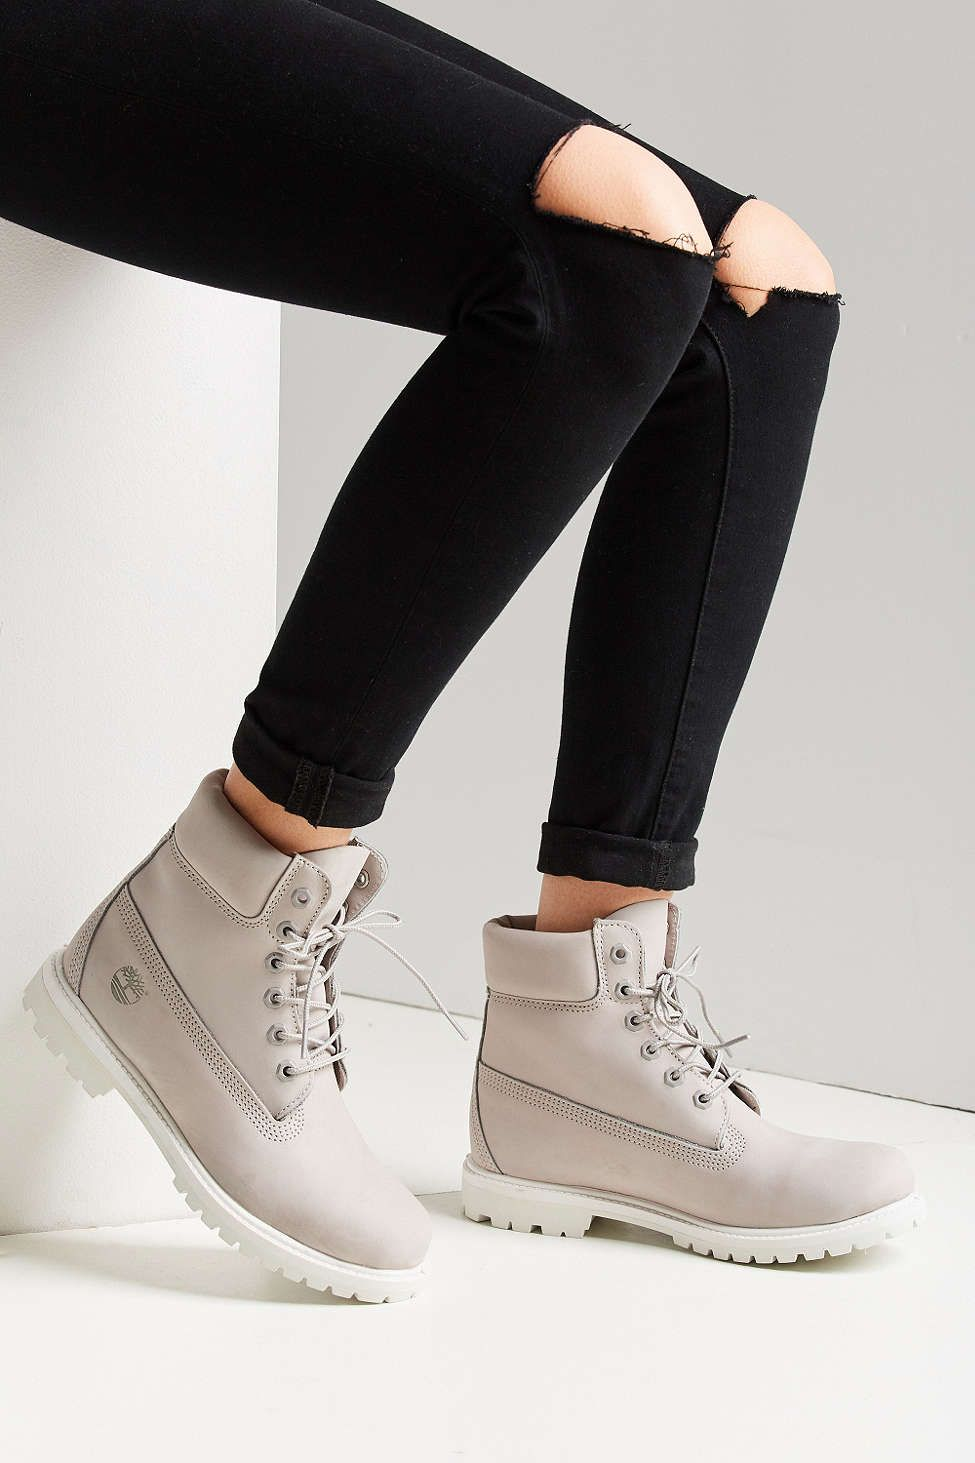 f217aee0e075 Timberland Premium Work Boot - Urban Outfitters More. women shoes k swiss   womenshoesnavywedge  womenshoeskswiss  womenshoesclearanceheelspumps ...